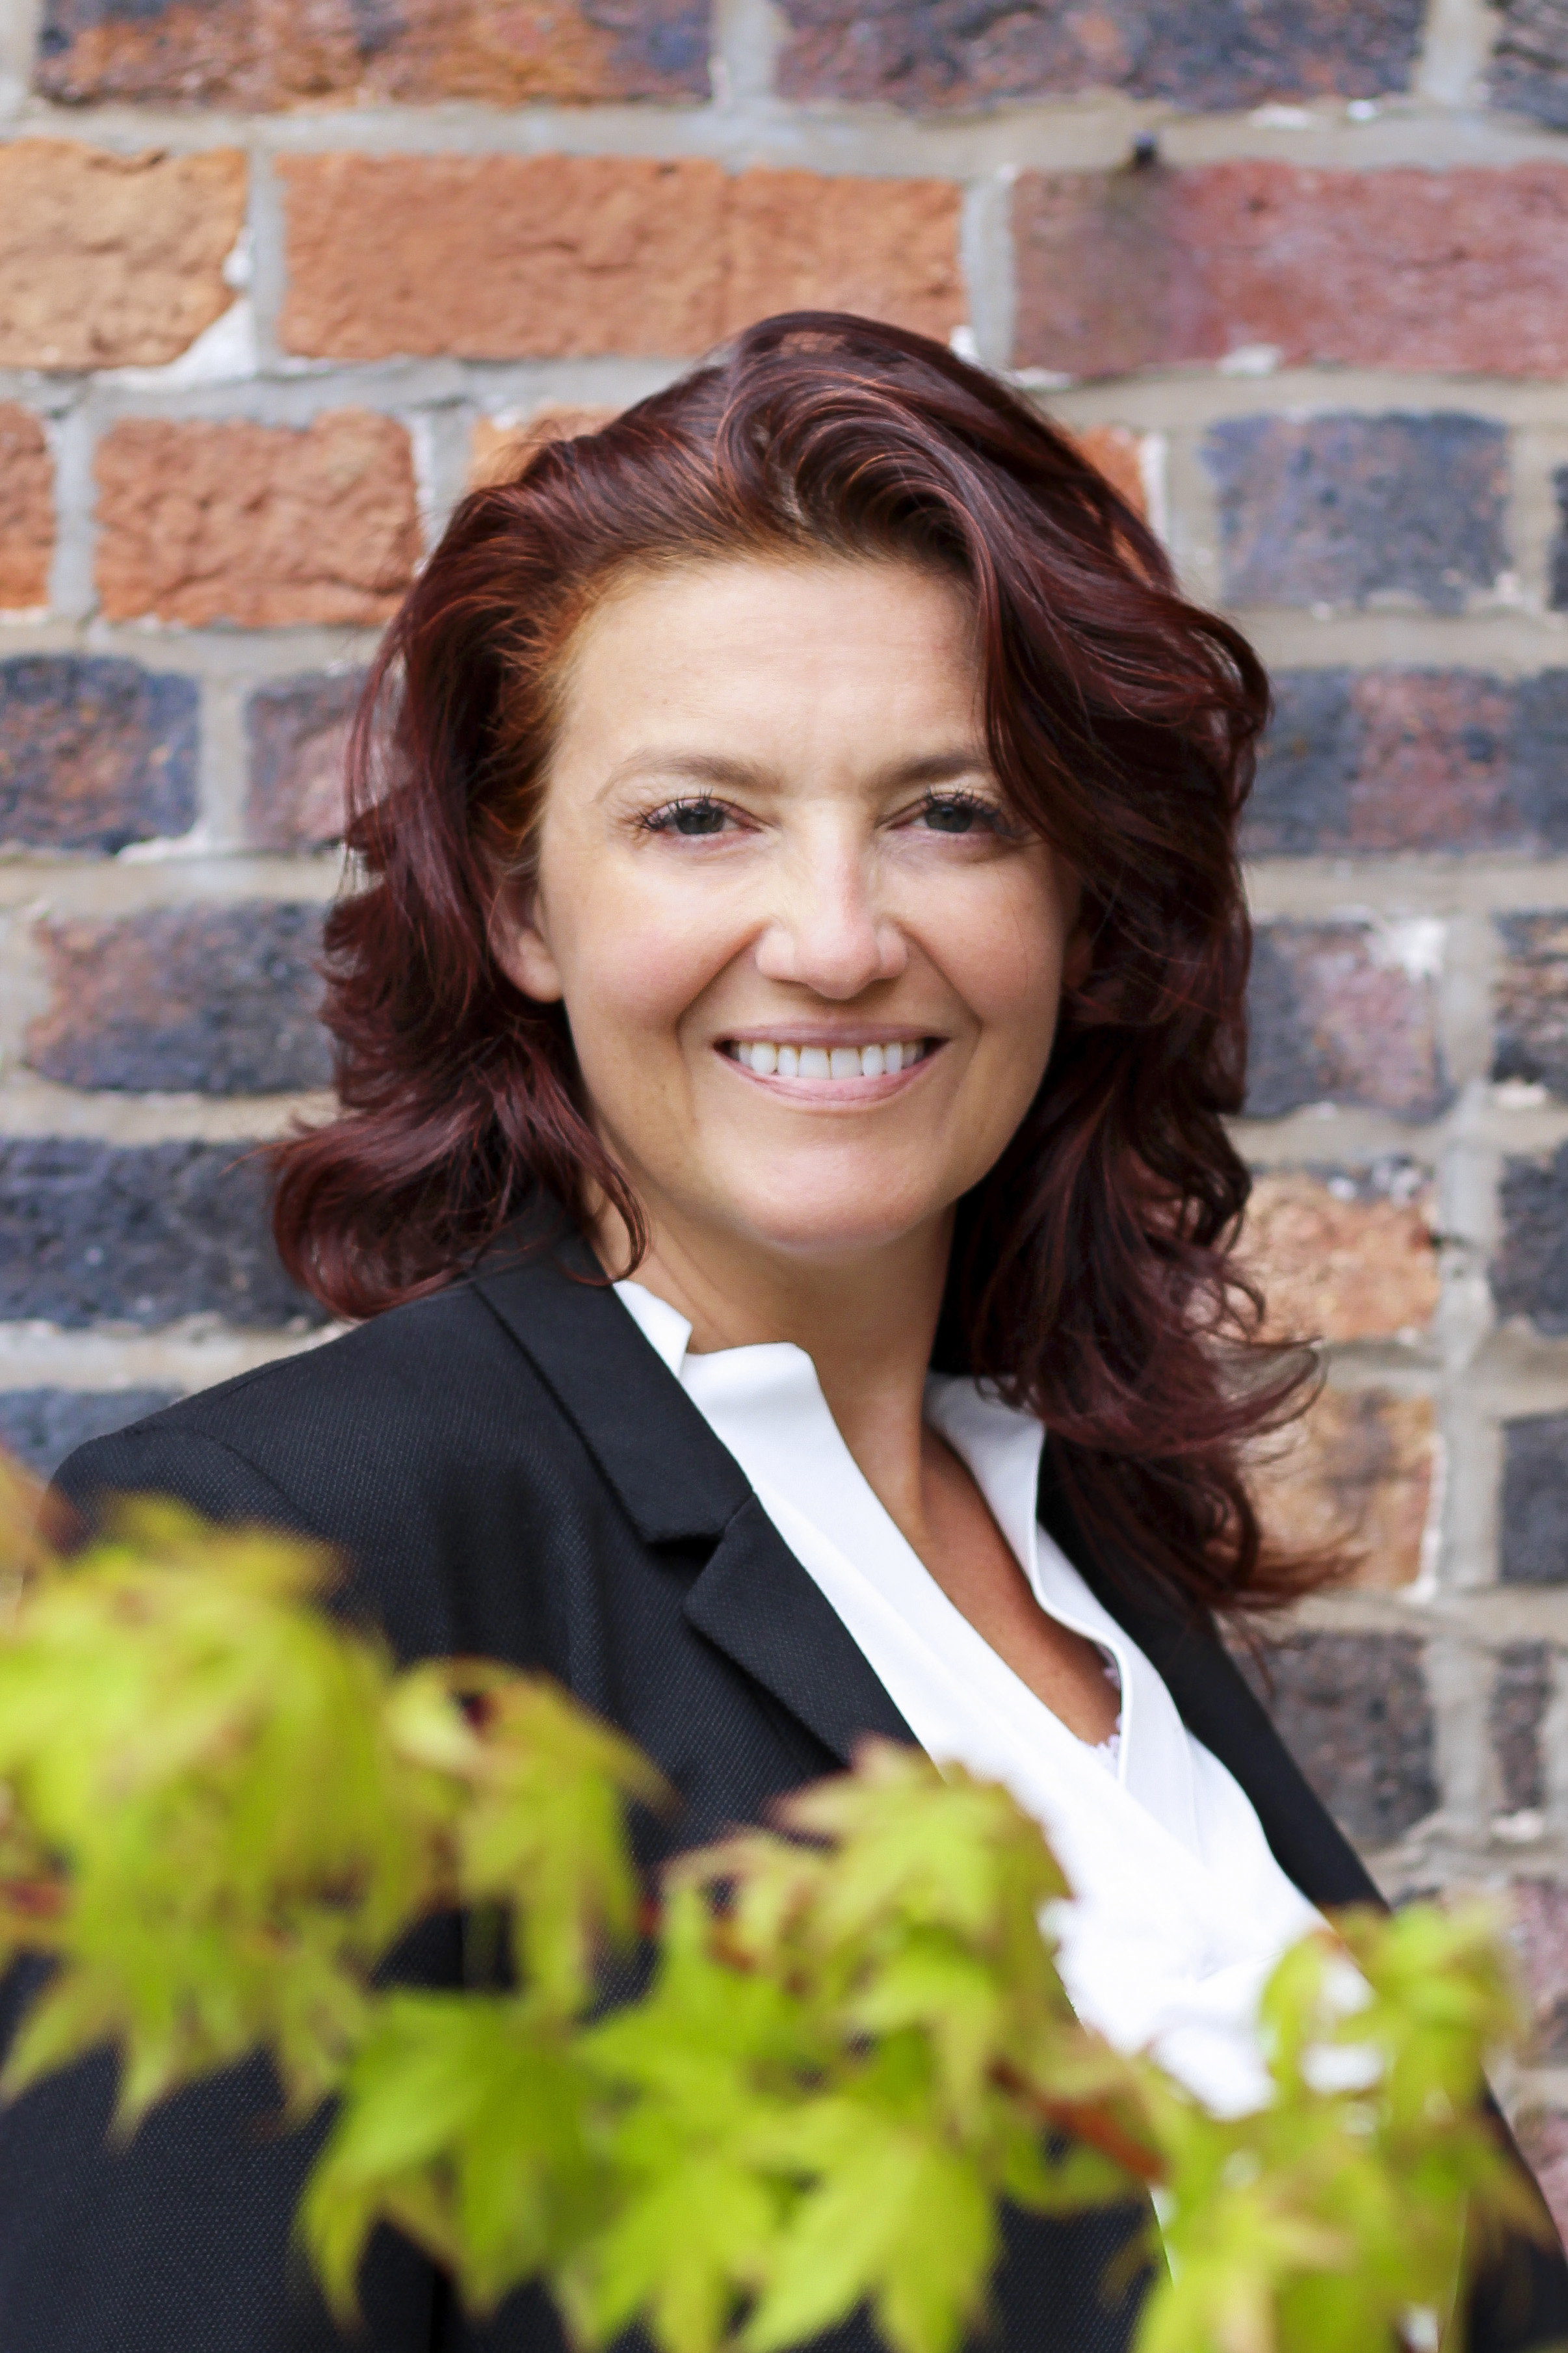 The Devonshire Arms Jennifer Young, Spa, well being beauty, Travel, Spa treatments